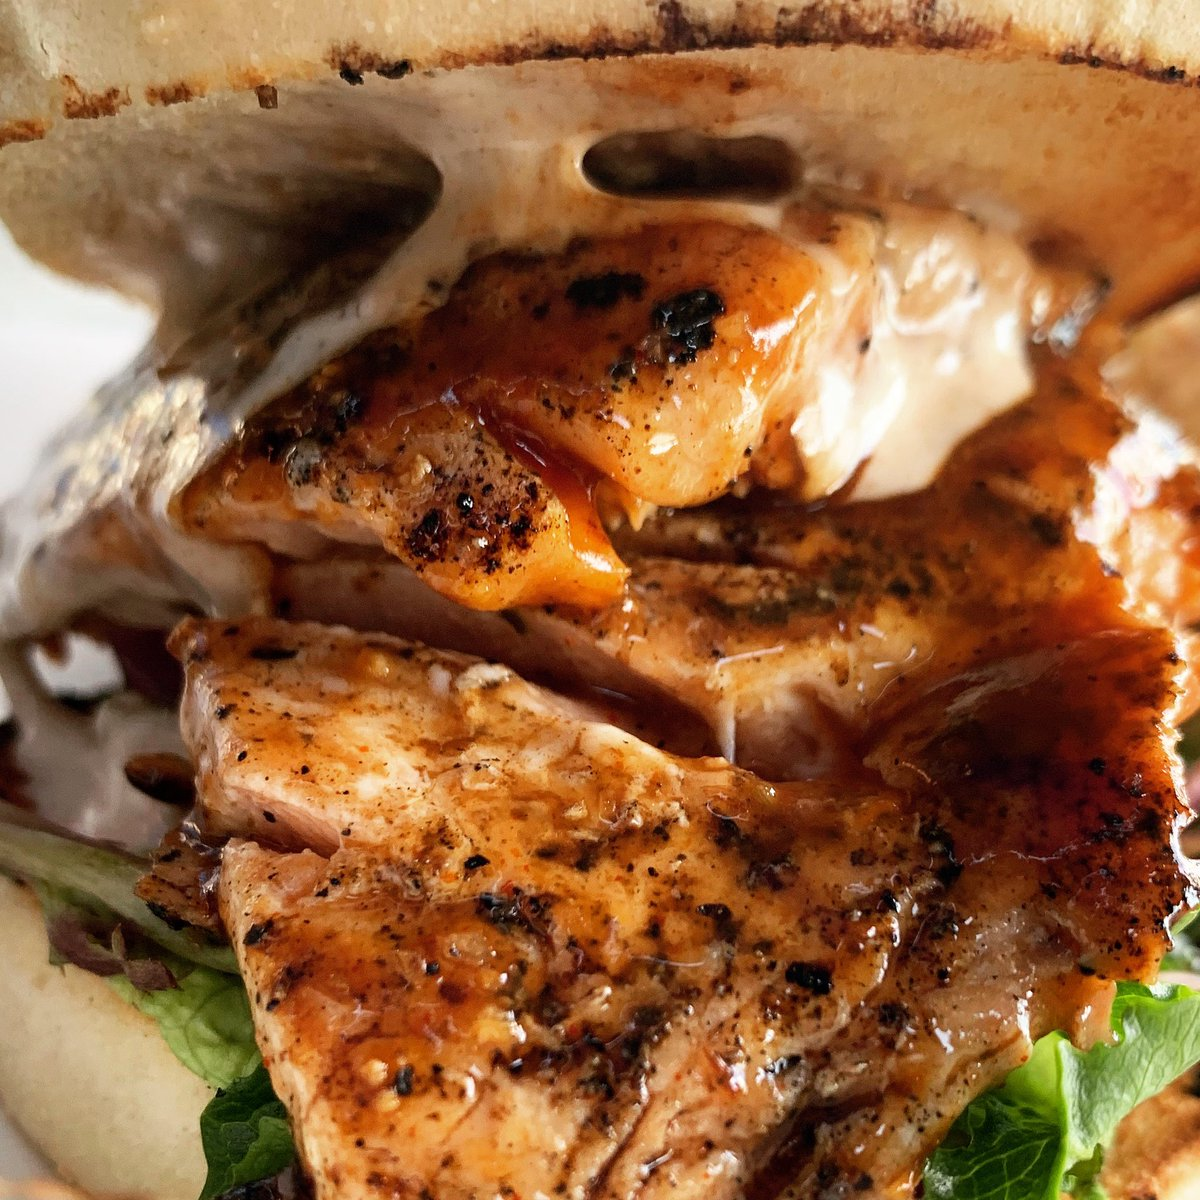 Grilled wild pink salmon with citrus infused molasses bbq sauce, marinated red onions and cumin-coriander aioli. pic.twitter.com/13YlwVInxM